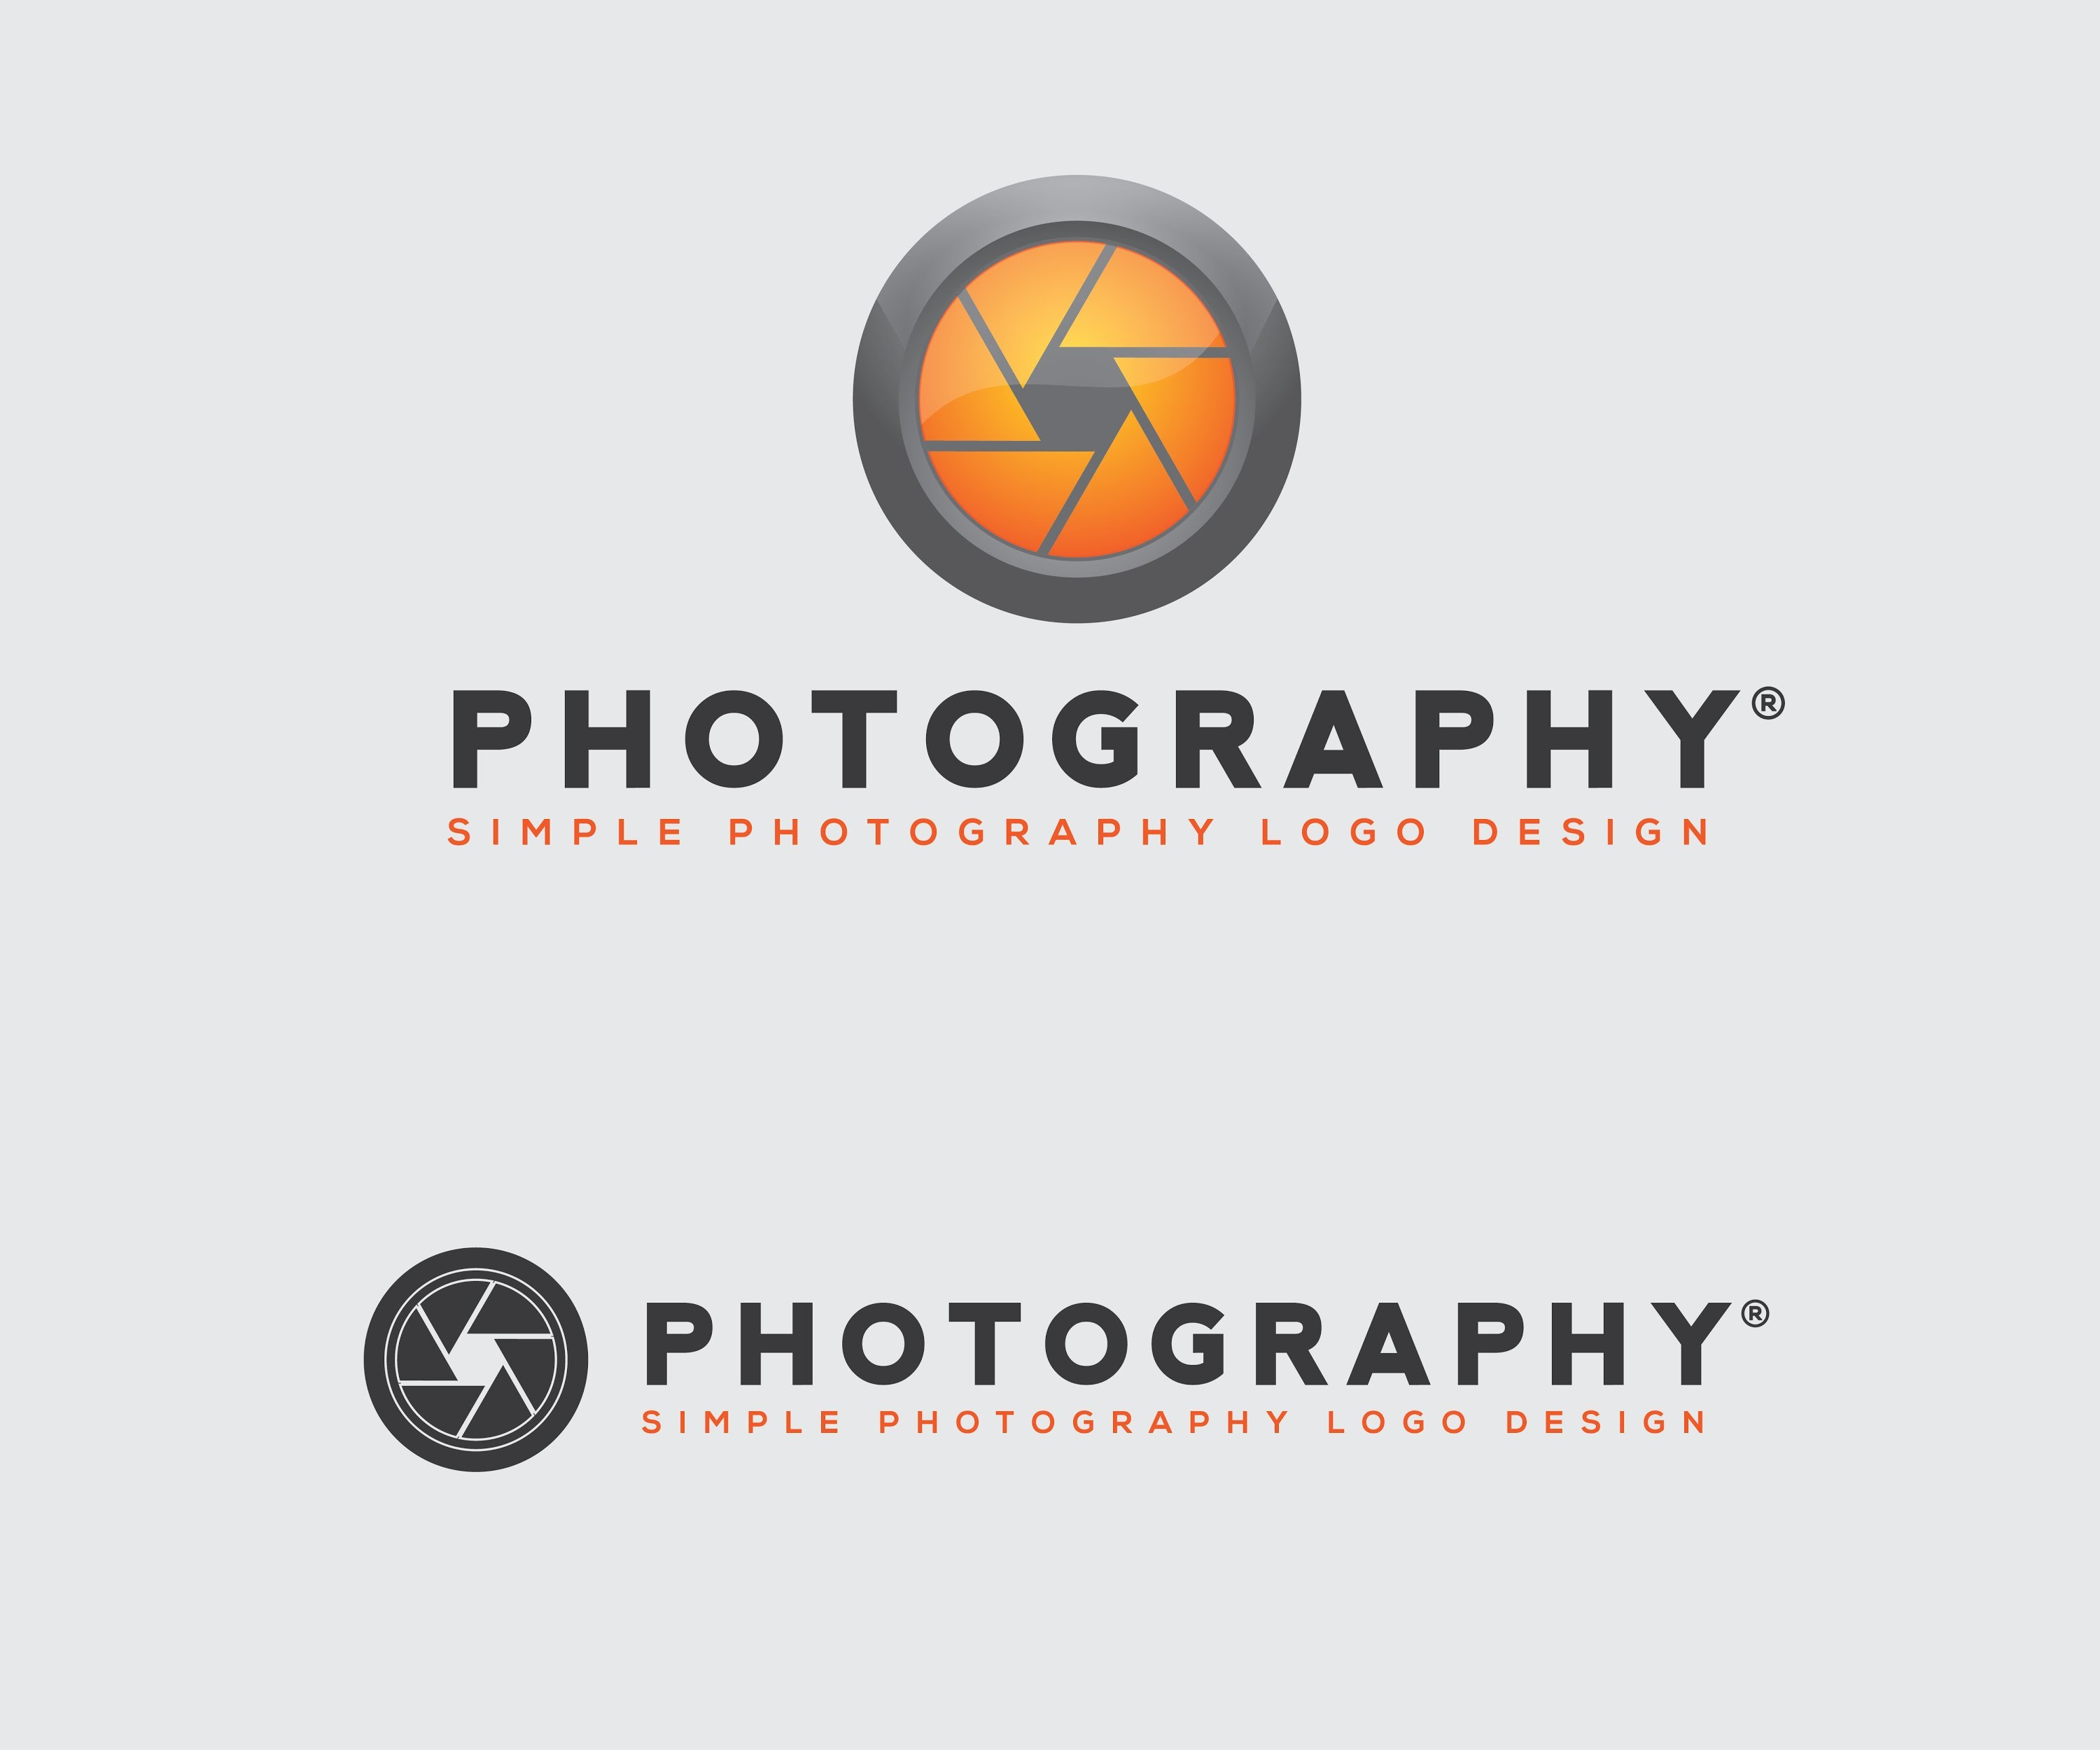 Free photography logos publicscrutiny Image collections